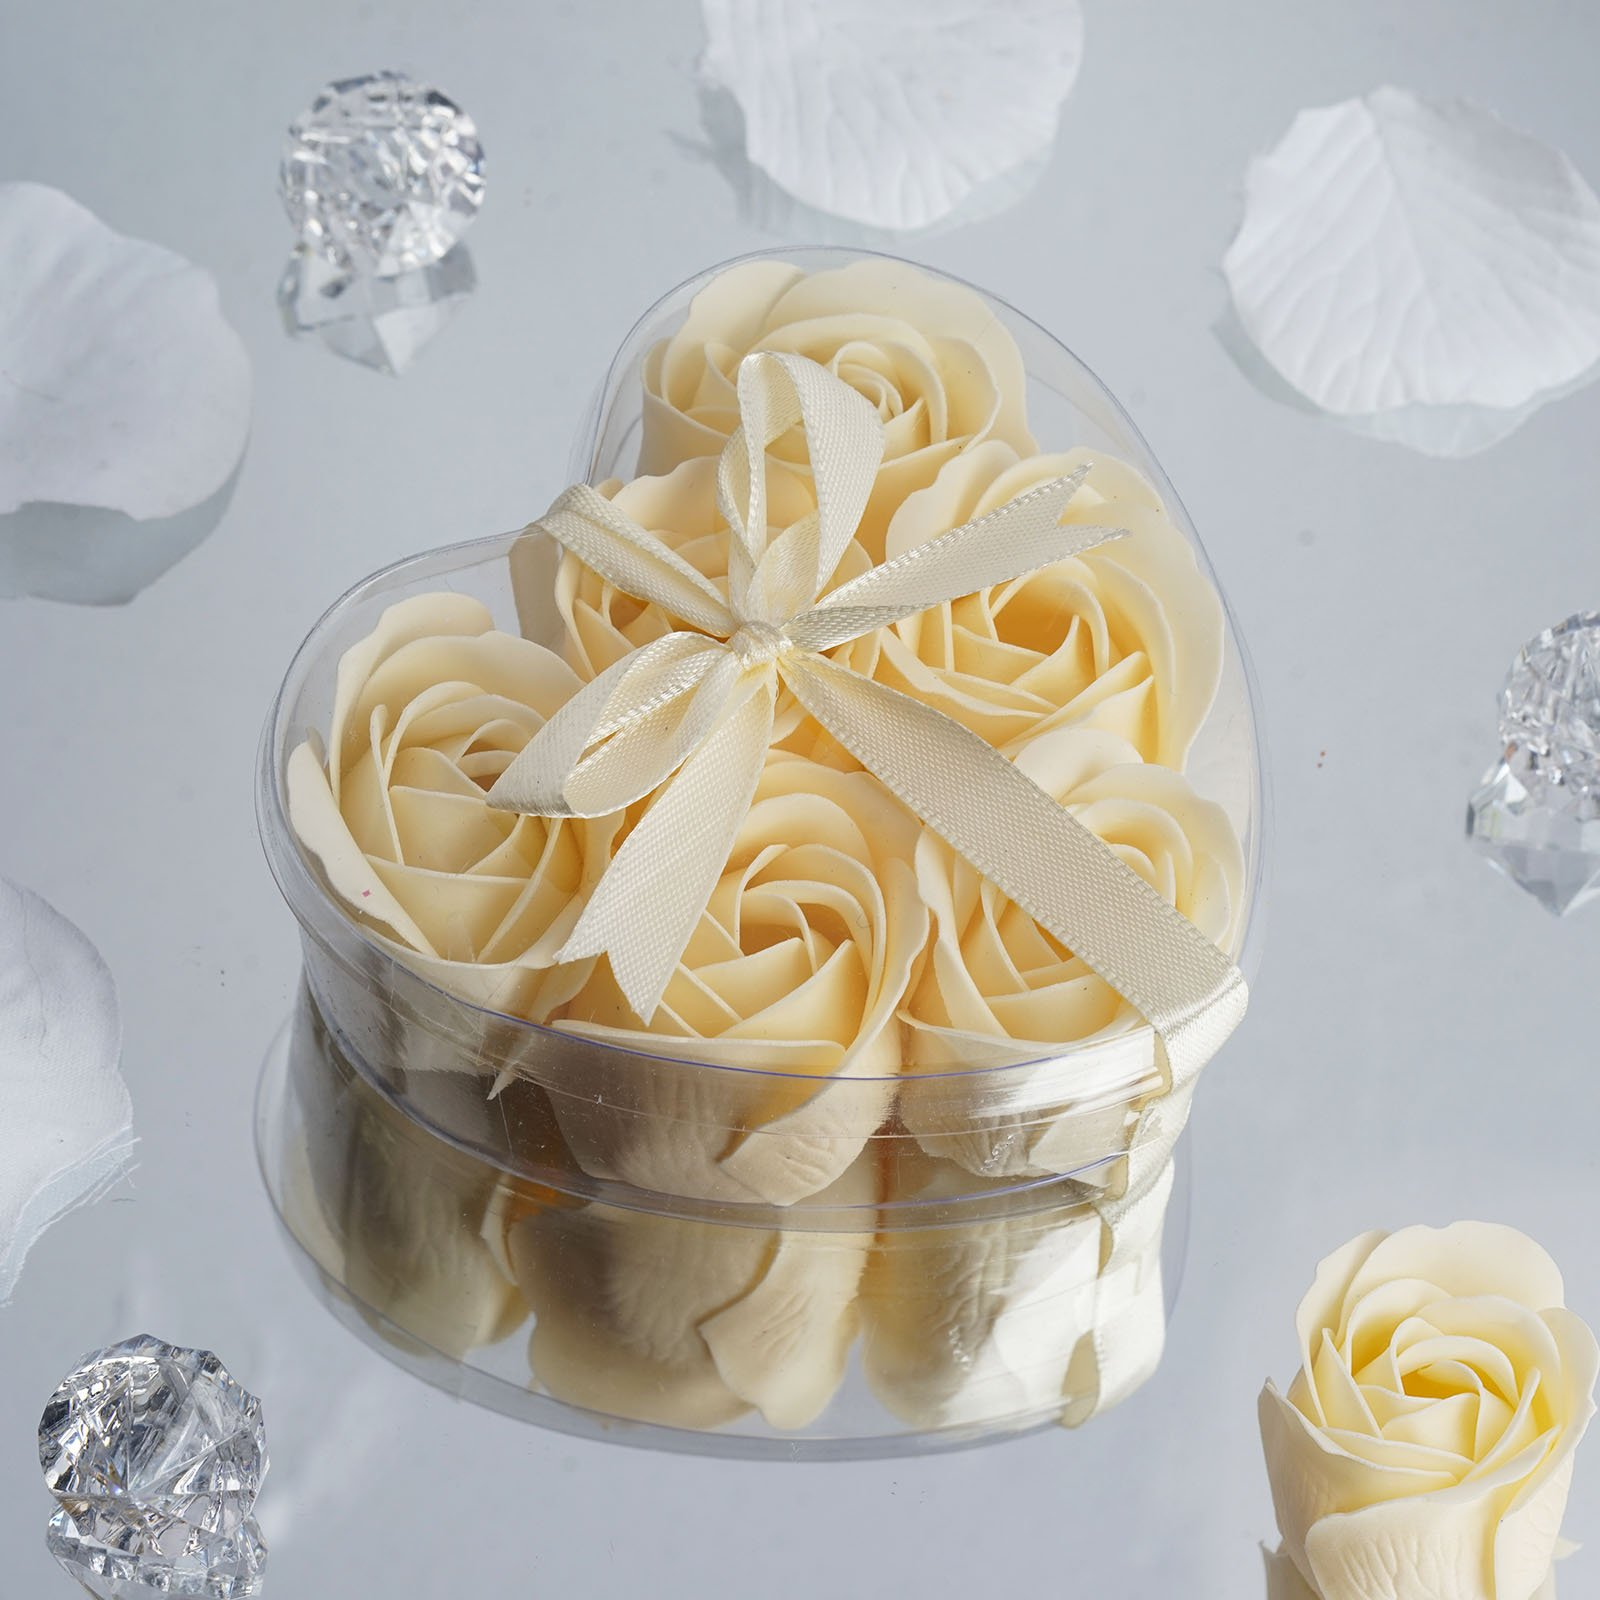 BalsaCircle 100 Gift Boxes with 6 Rose Soaps - Wedding Favors - Ivory by BalsaCircle